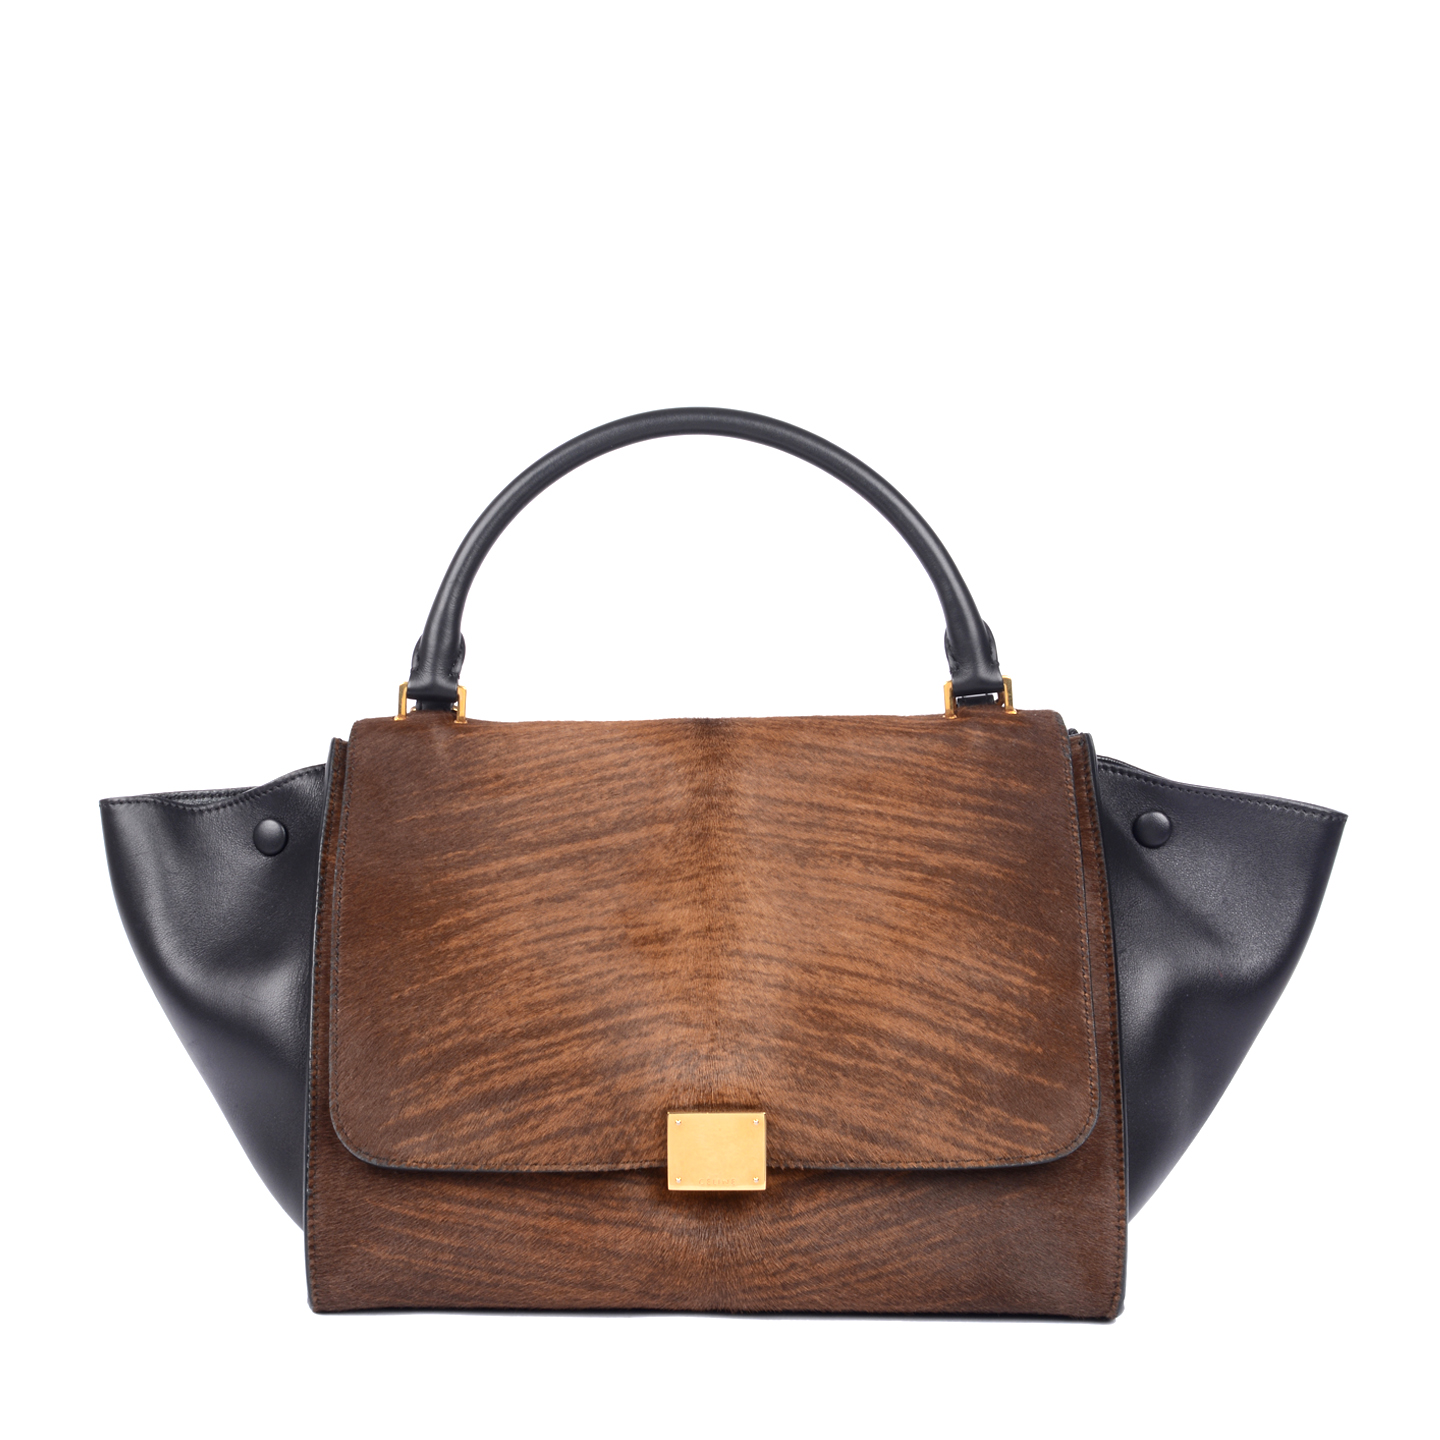 Celine Dark Brown Calf Hair Trapeze Bag